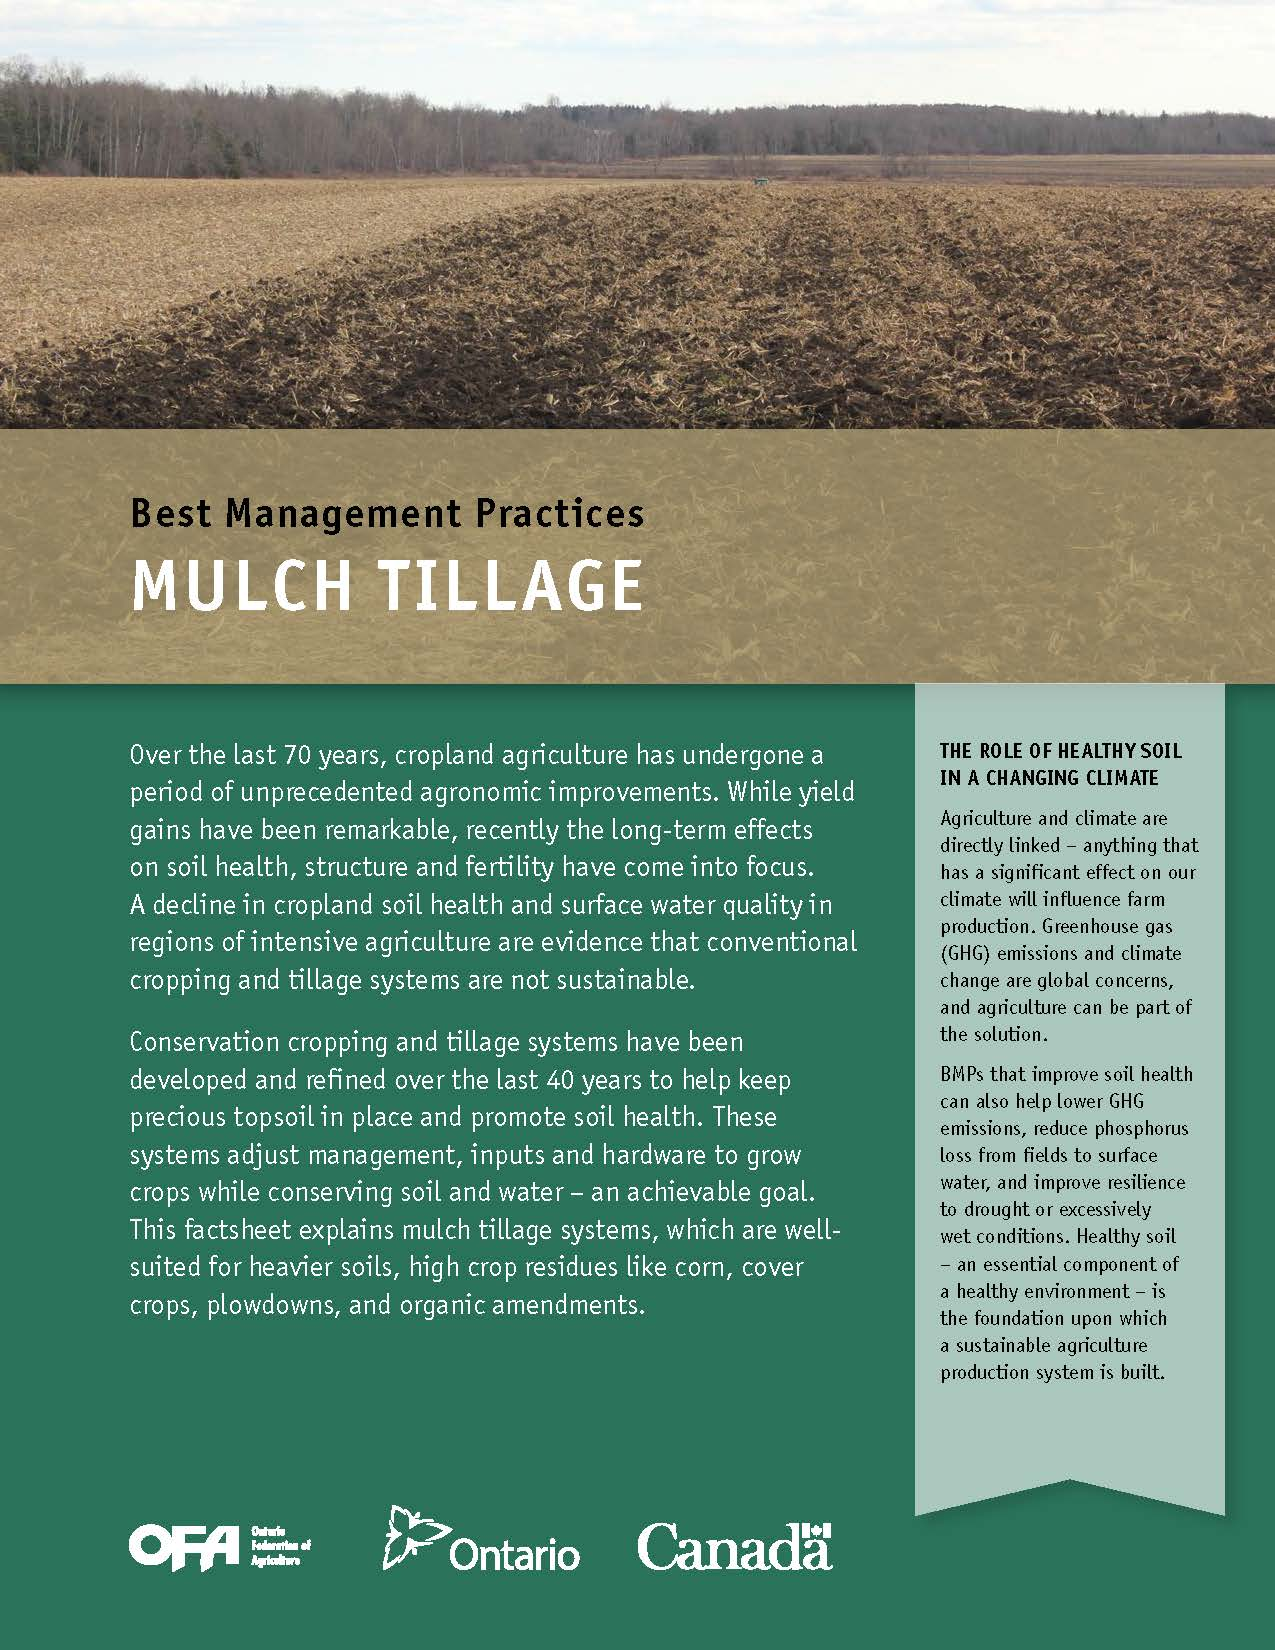 Image of Mulch Tillage